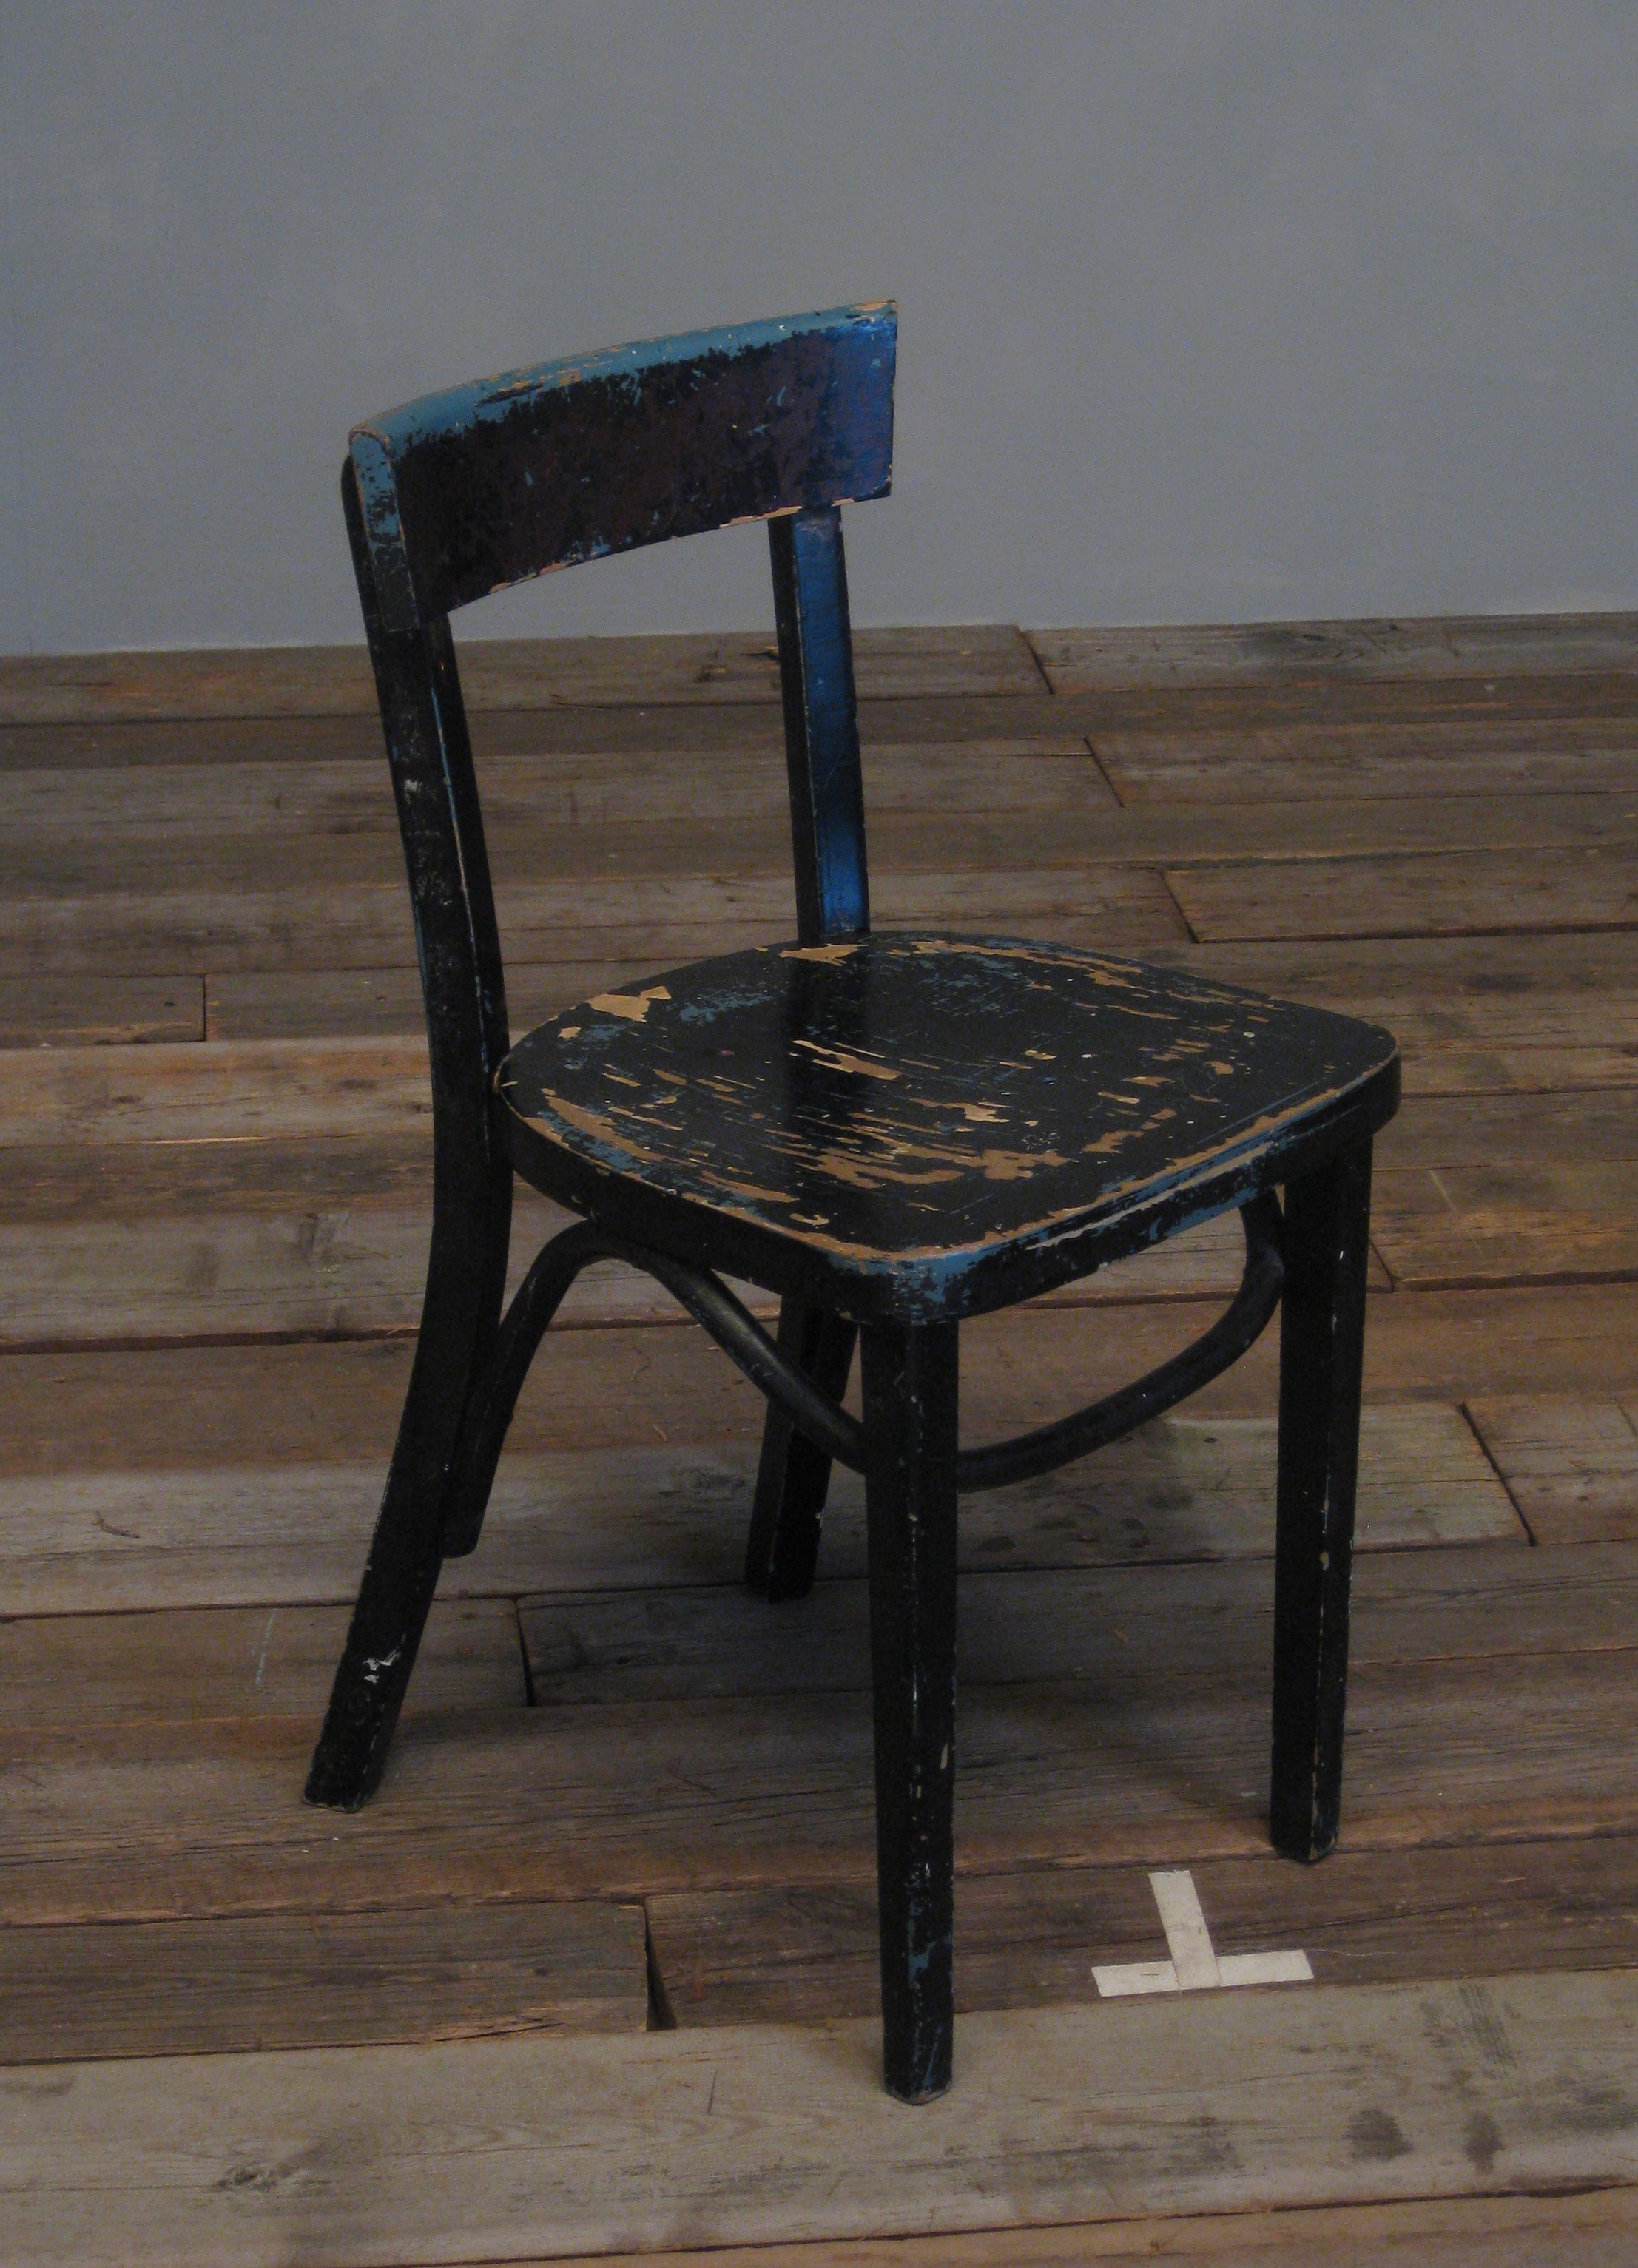 RSS Distressed Cafe Chair $60